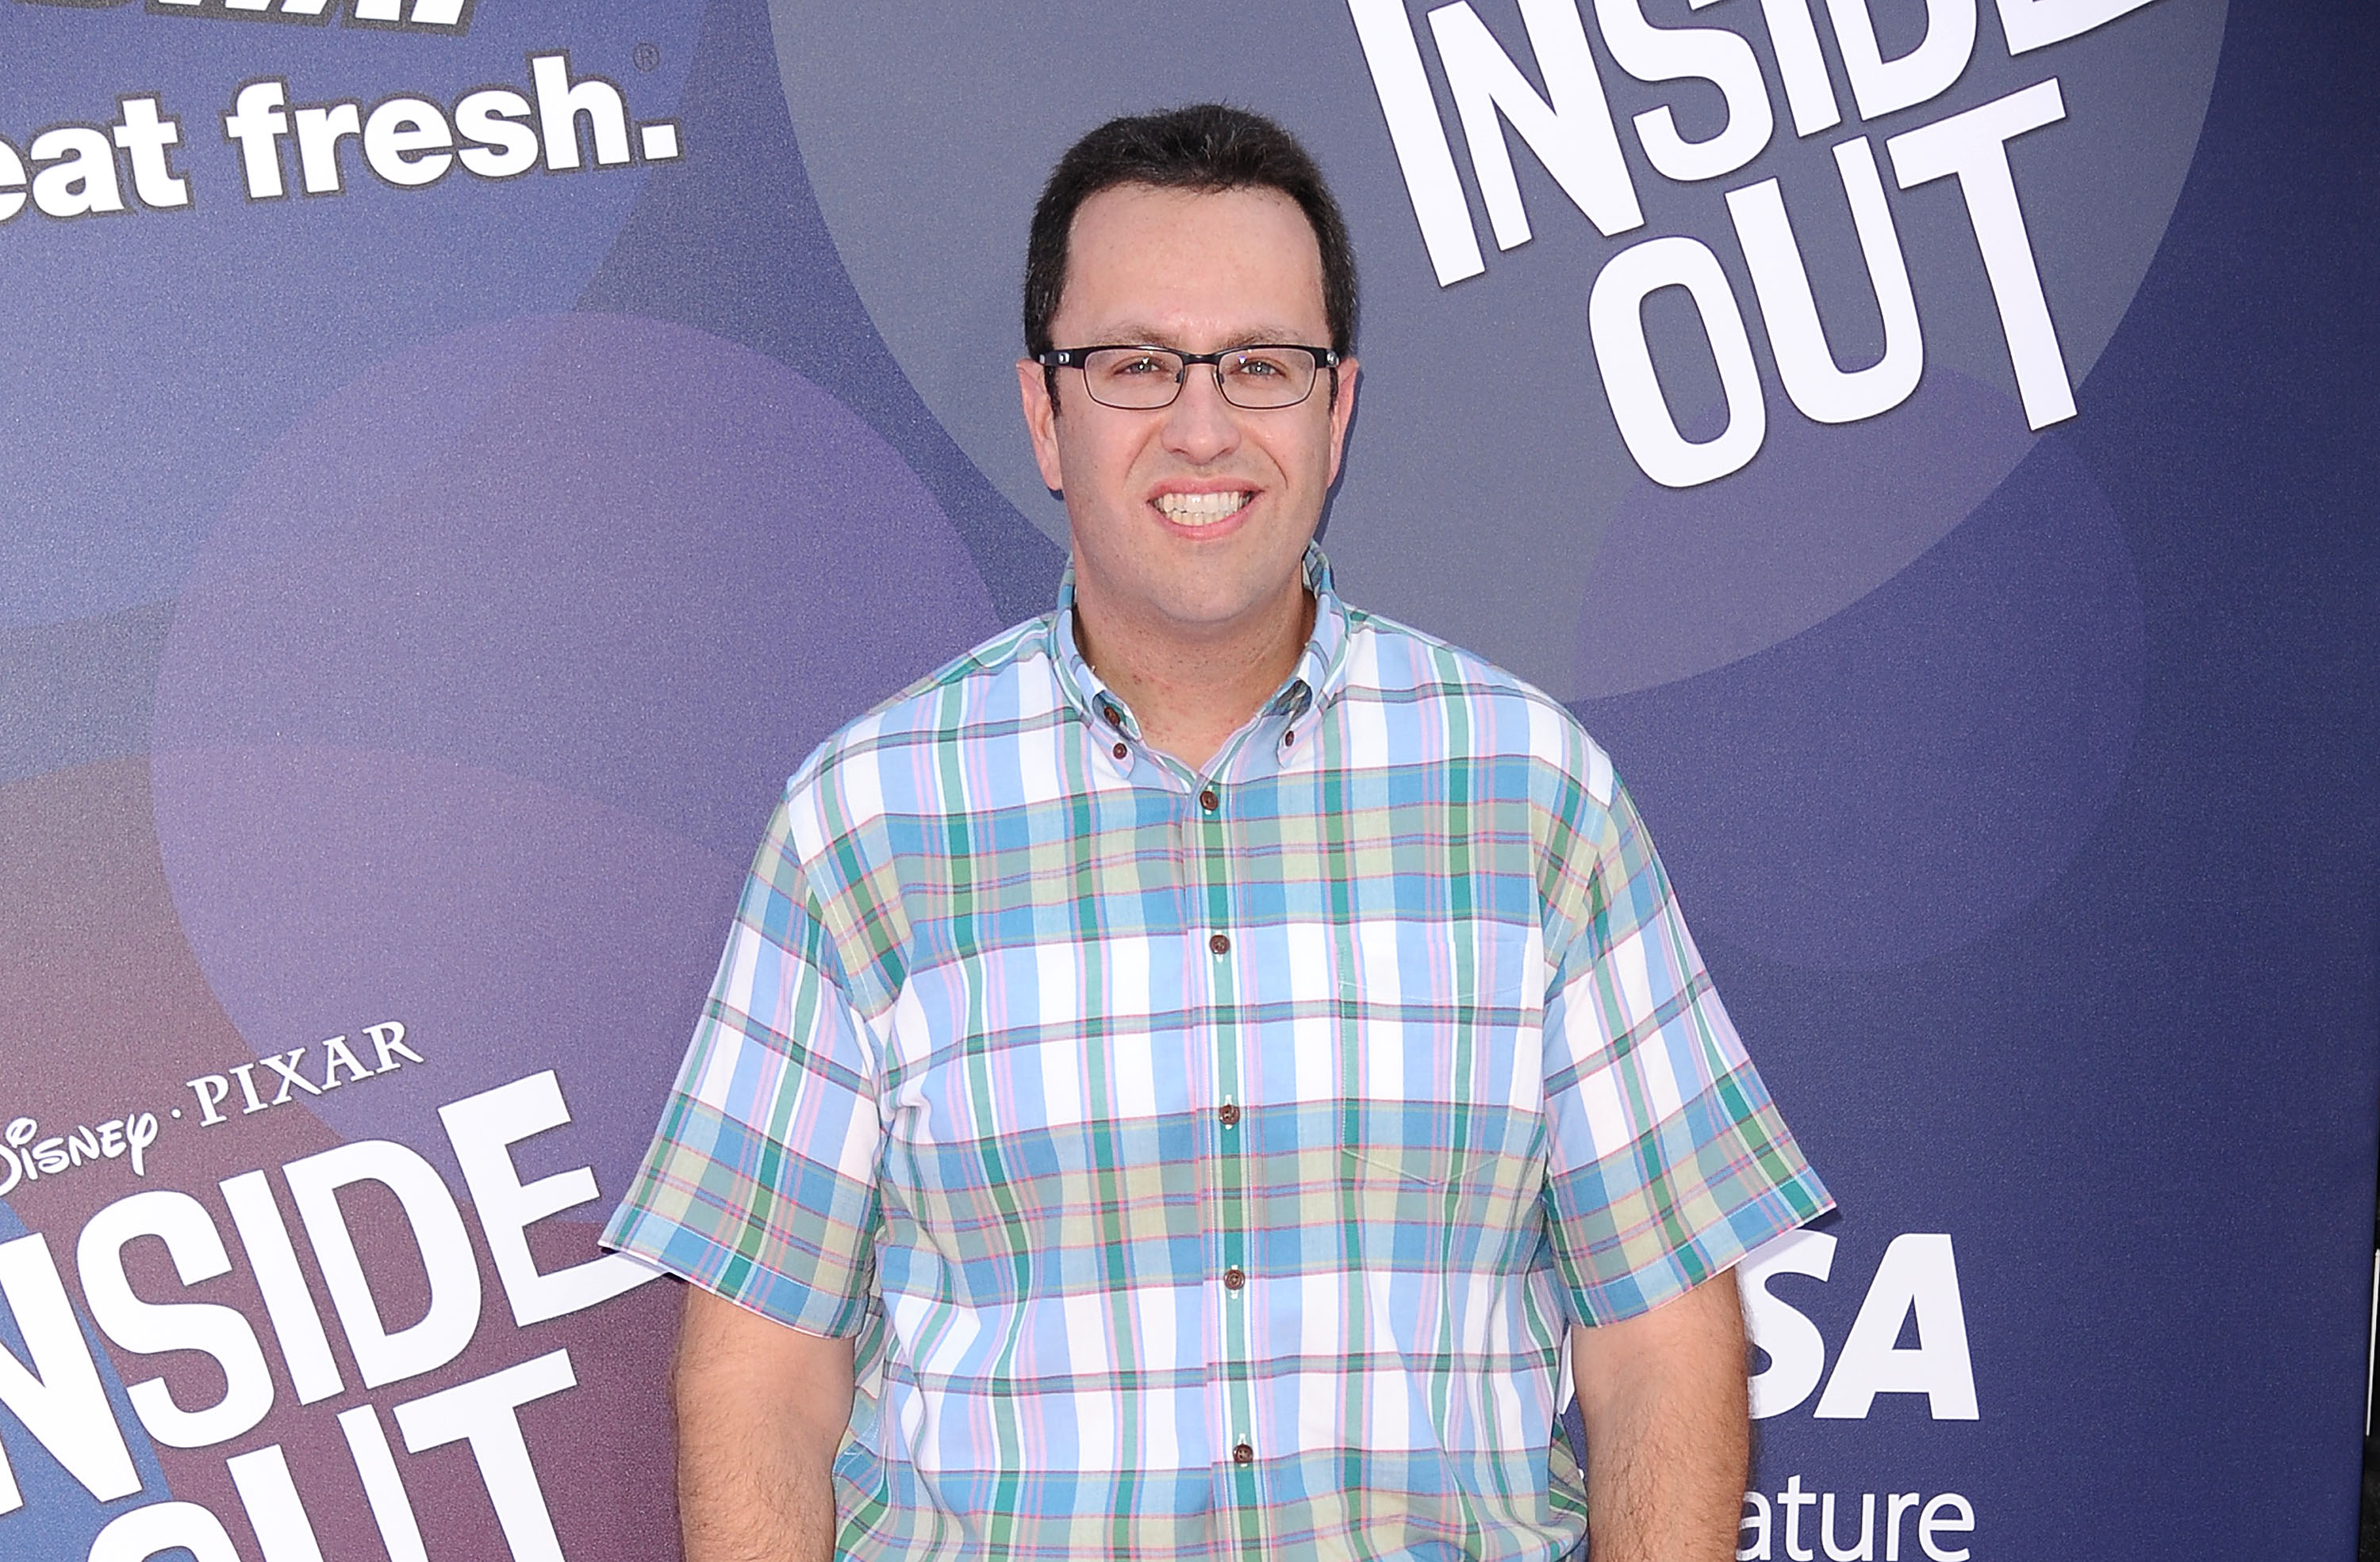 Subway Guy Jared Fogle To Plead Guilty To Child Pornography Charges